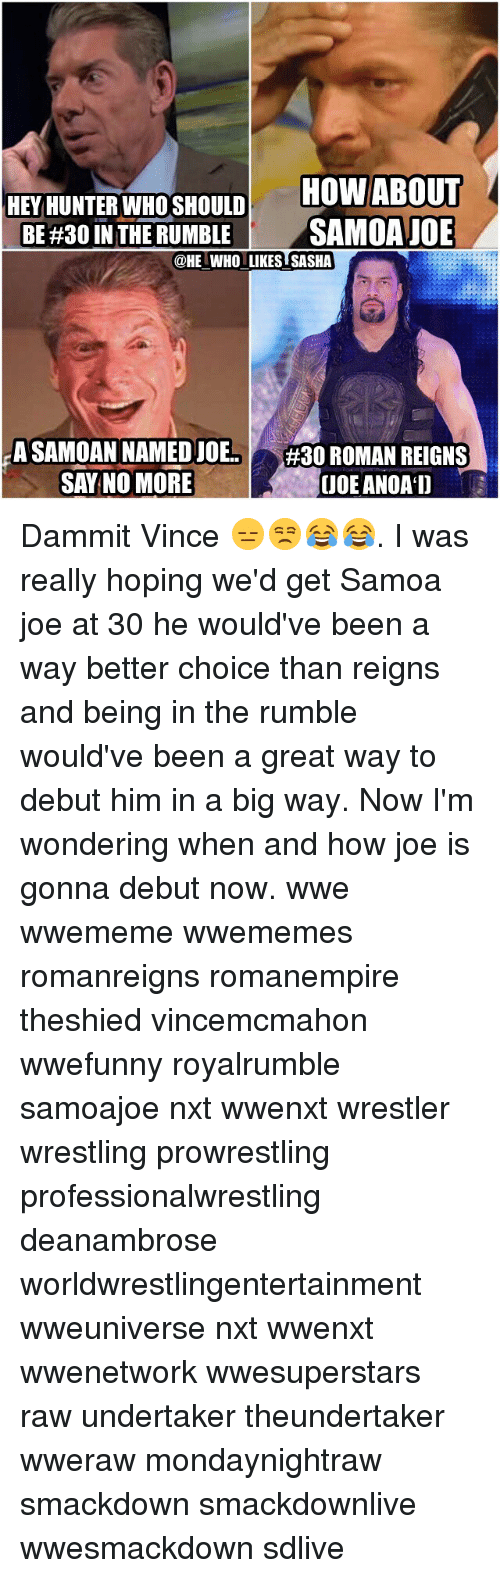 Roman Reigns: HOW ABOUT  HEY HUNTER WHO SHOULD  BE #30 IN THE RUMBLE  SAMOA JOE  @HE WHO LIKES SASHA  A SAMOAN NAMEDJOE  #30 ROMAN REIGNS  SAY NO MORE  UDE ANOAD Dammit Vince 😑😒😂😂. I was really hoping we'd get Samoa joe at 30 he would've been a way better choice than reigns and being in the rumble would've been a great way to debut him in a big way. Now I'm wondering when and how joe is gonna debut now. wwe wwememe wwememes romanreigns romanempire theshied vincemcmahon wwefunny royalrumble samoajoe nxt wwenxt wrestler wrestling prowrestling professionalwrestling deanambrose worldwrestlingentertainment wweuniverse nxt wwenxt wwenetwork wwesuperstars raw undertaker theundertaker wweraw mondaynightraw smackdown smackdownlive wwesmackdown sdlive